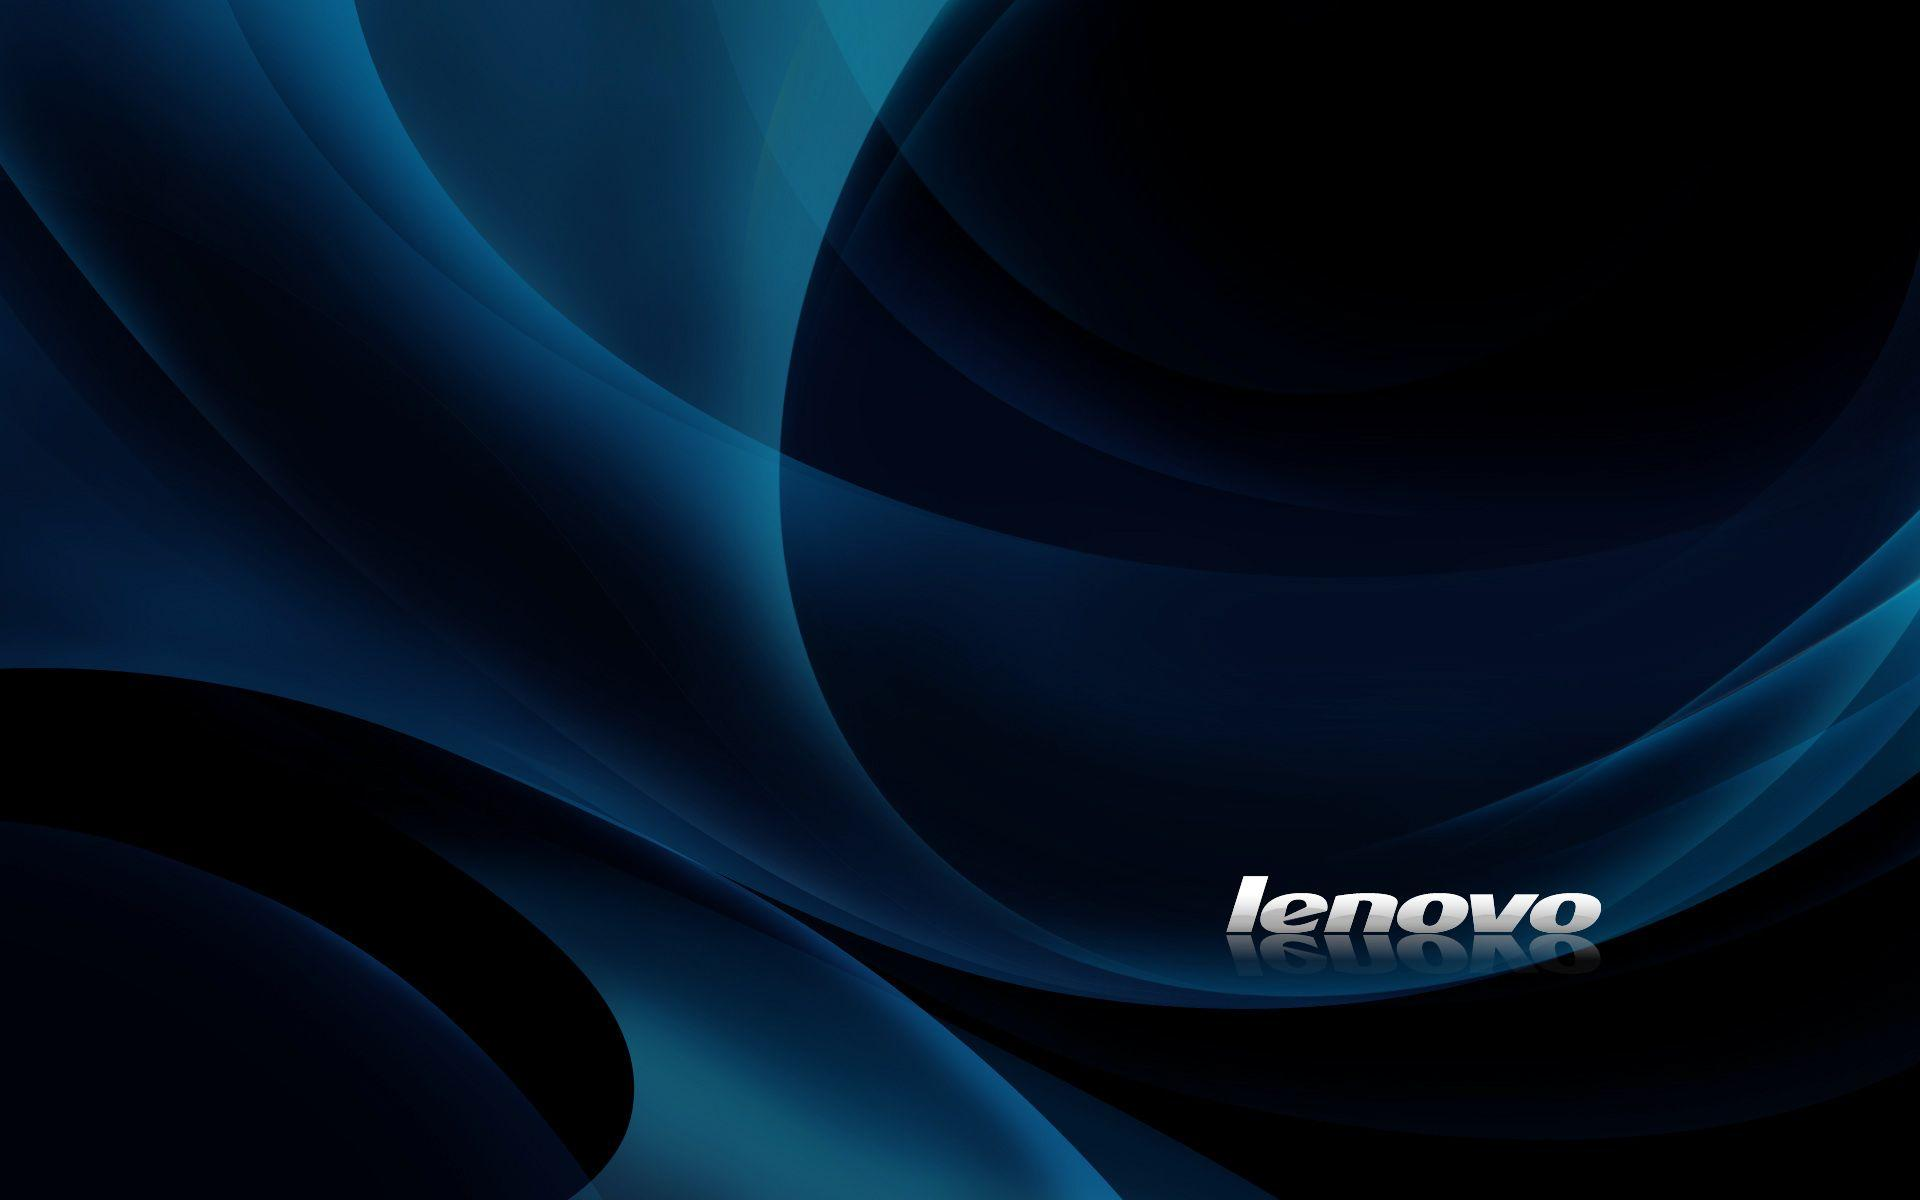 Lenovo Thinkpad Wallpapers Themes - Wallpaper Cave